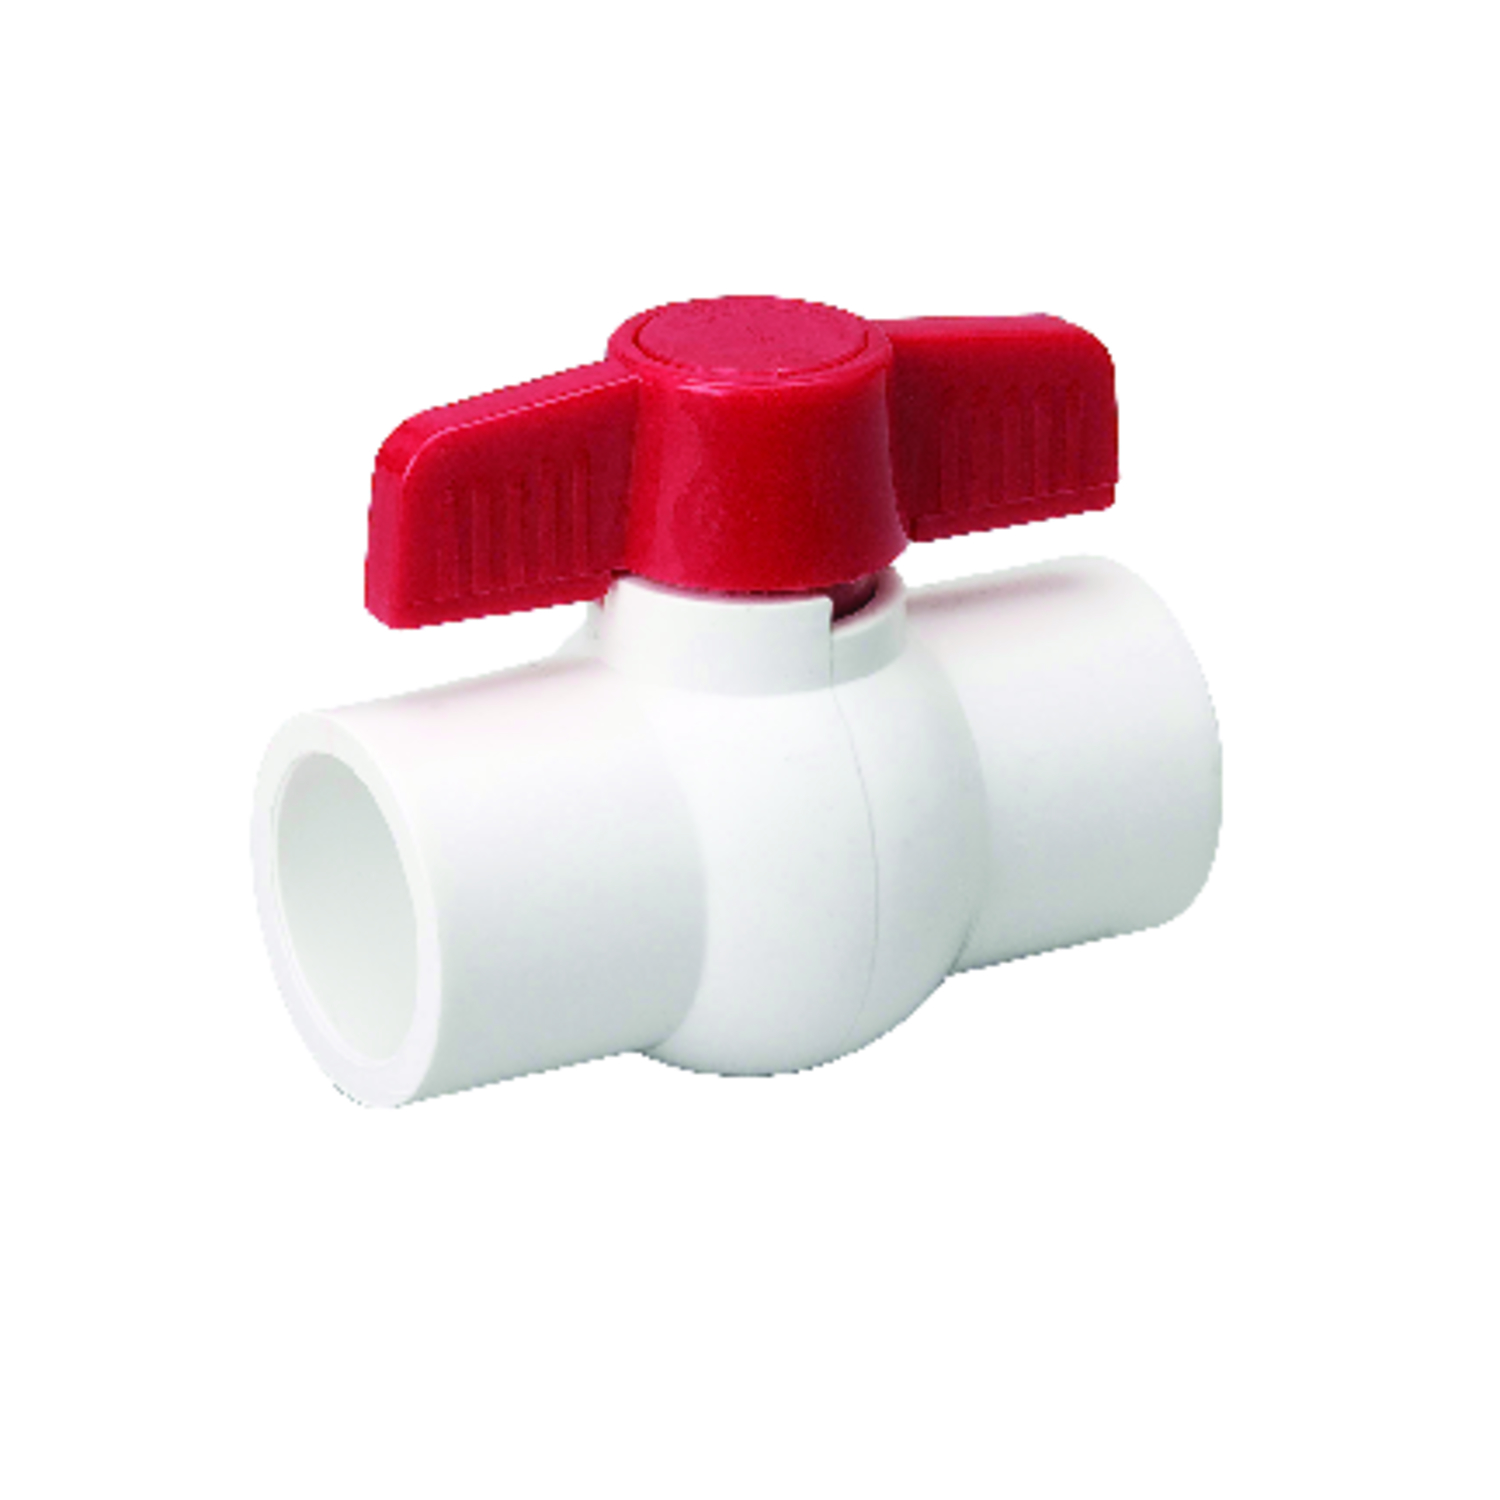 Mueller  Ball Valve  1-1/4 in. Dia. x slip   x 1-1/4 in. Dia. slip  PVC  Ball